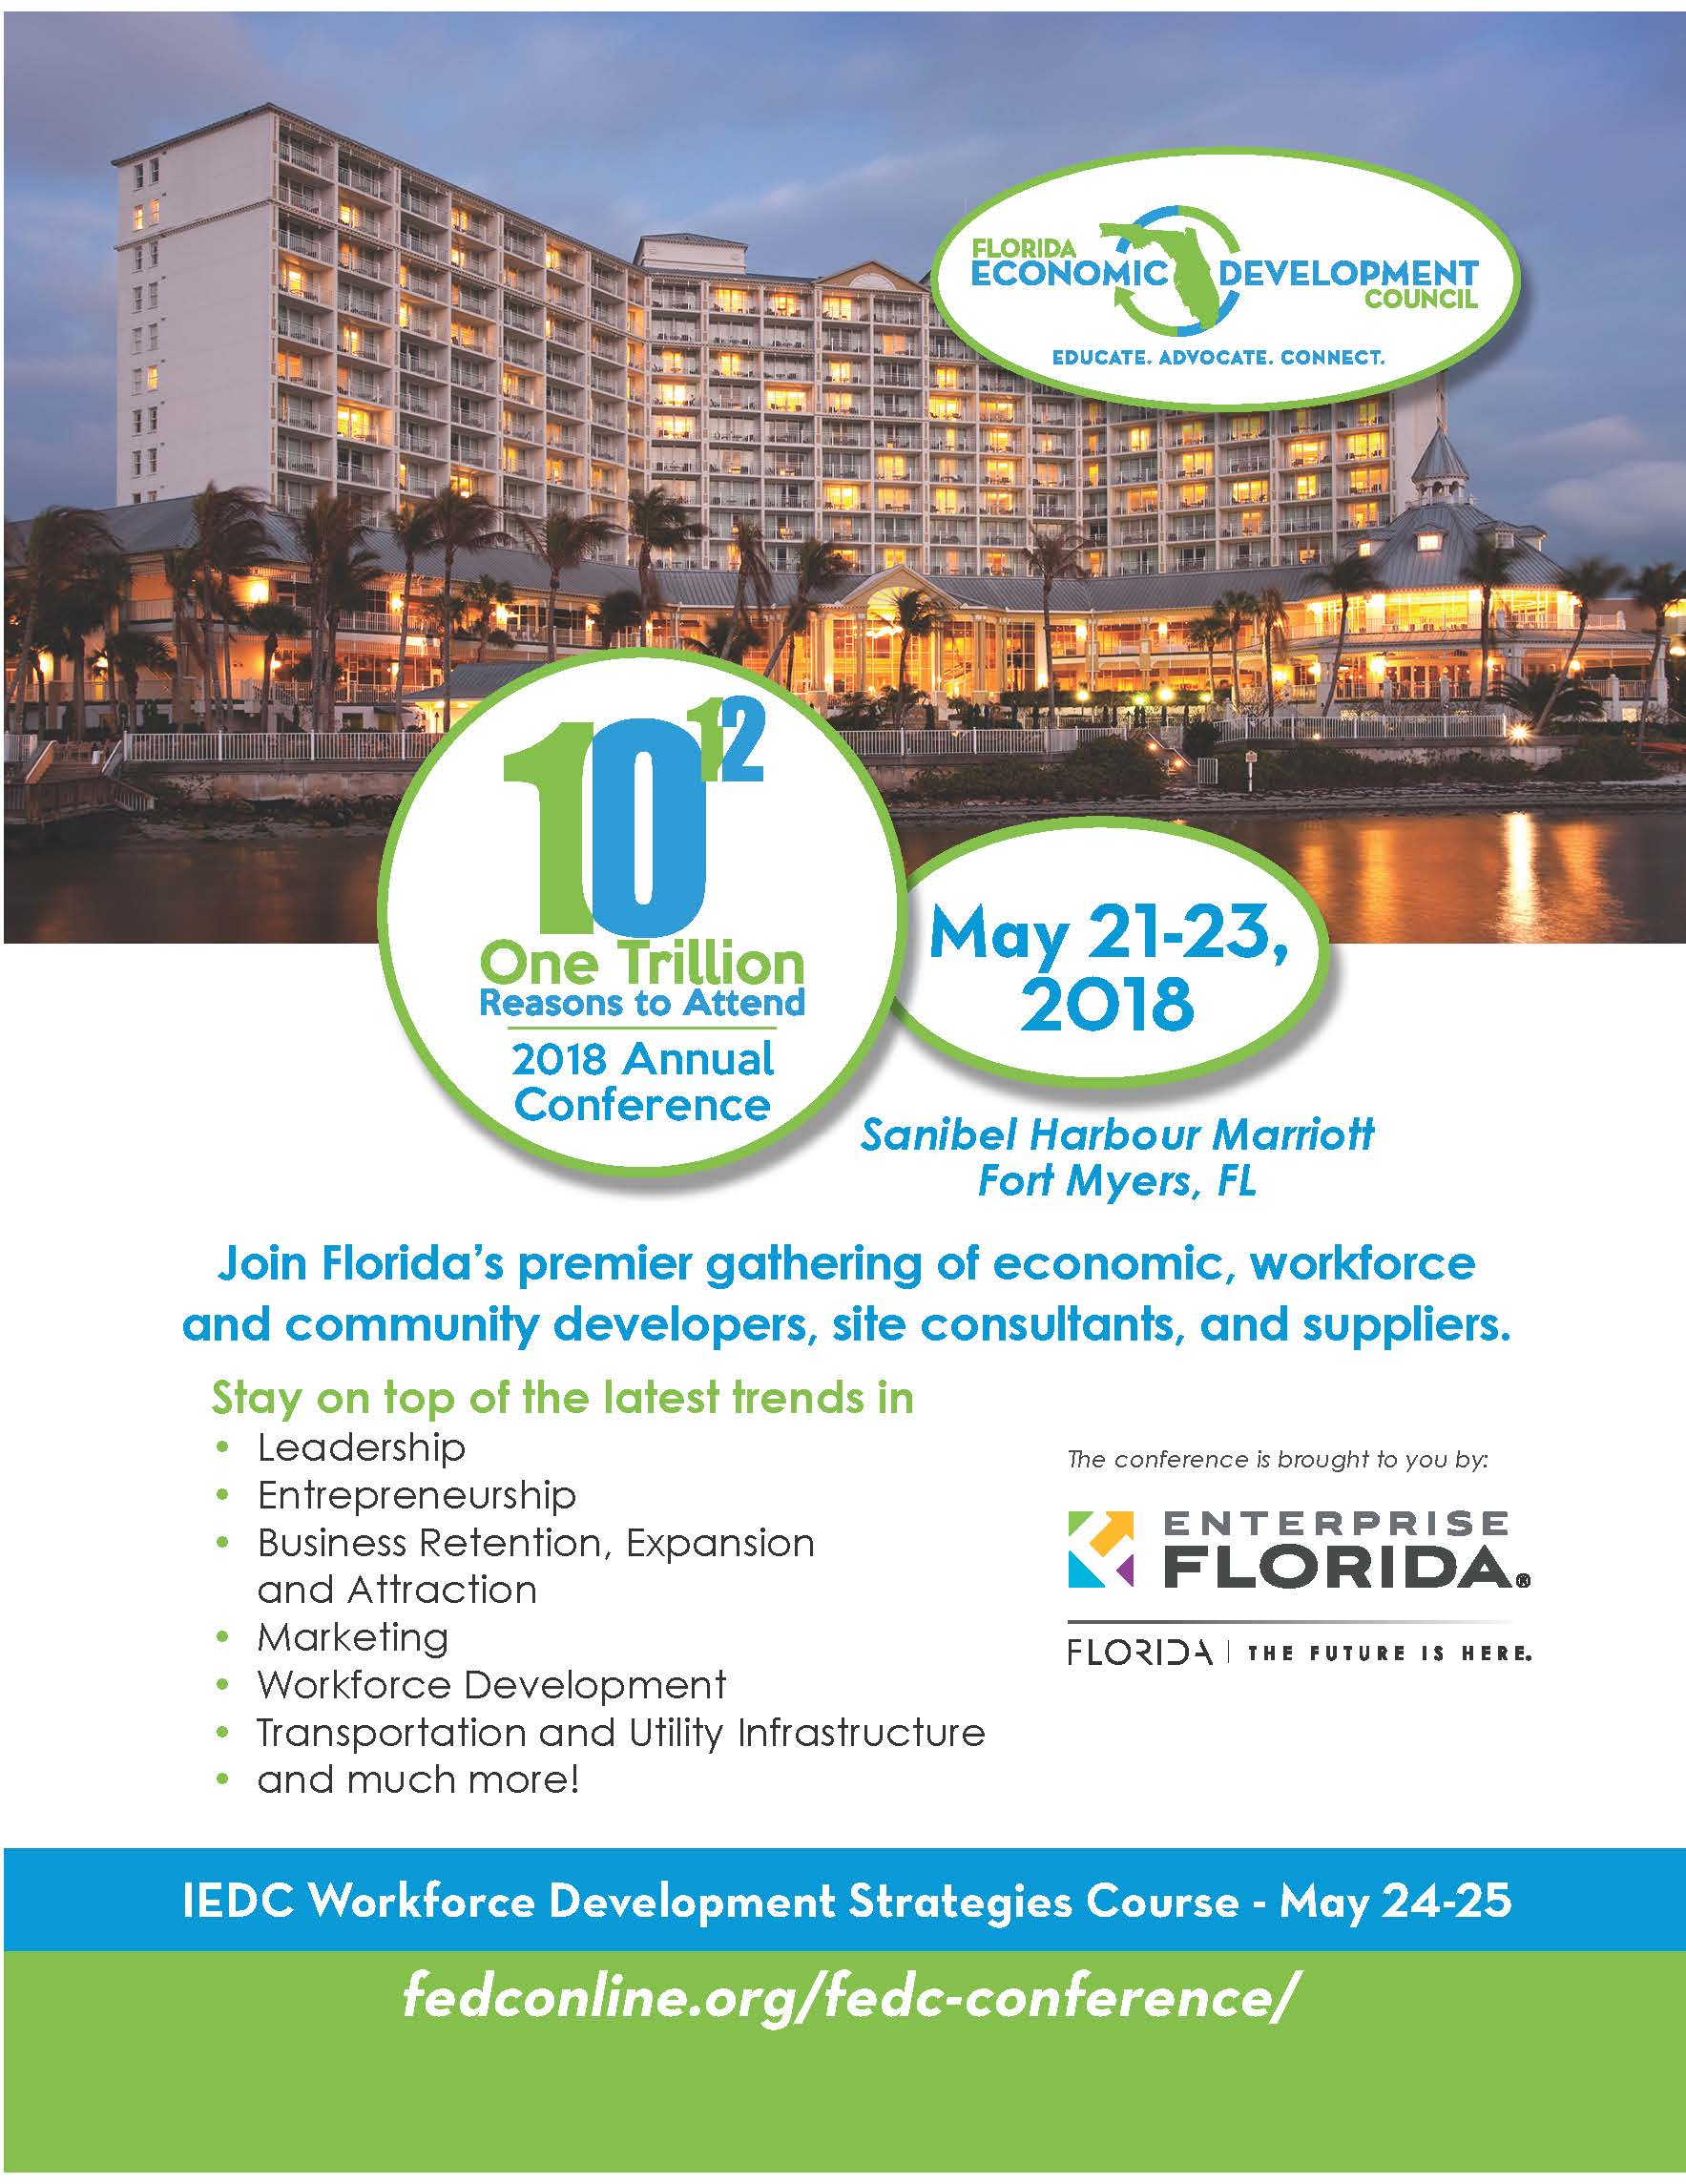 Florida Economic Development Council Conference